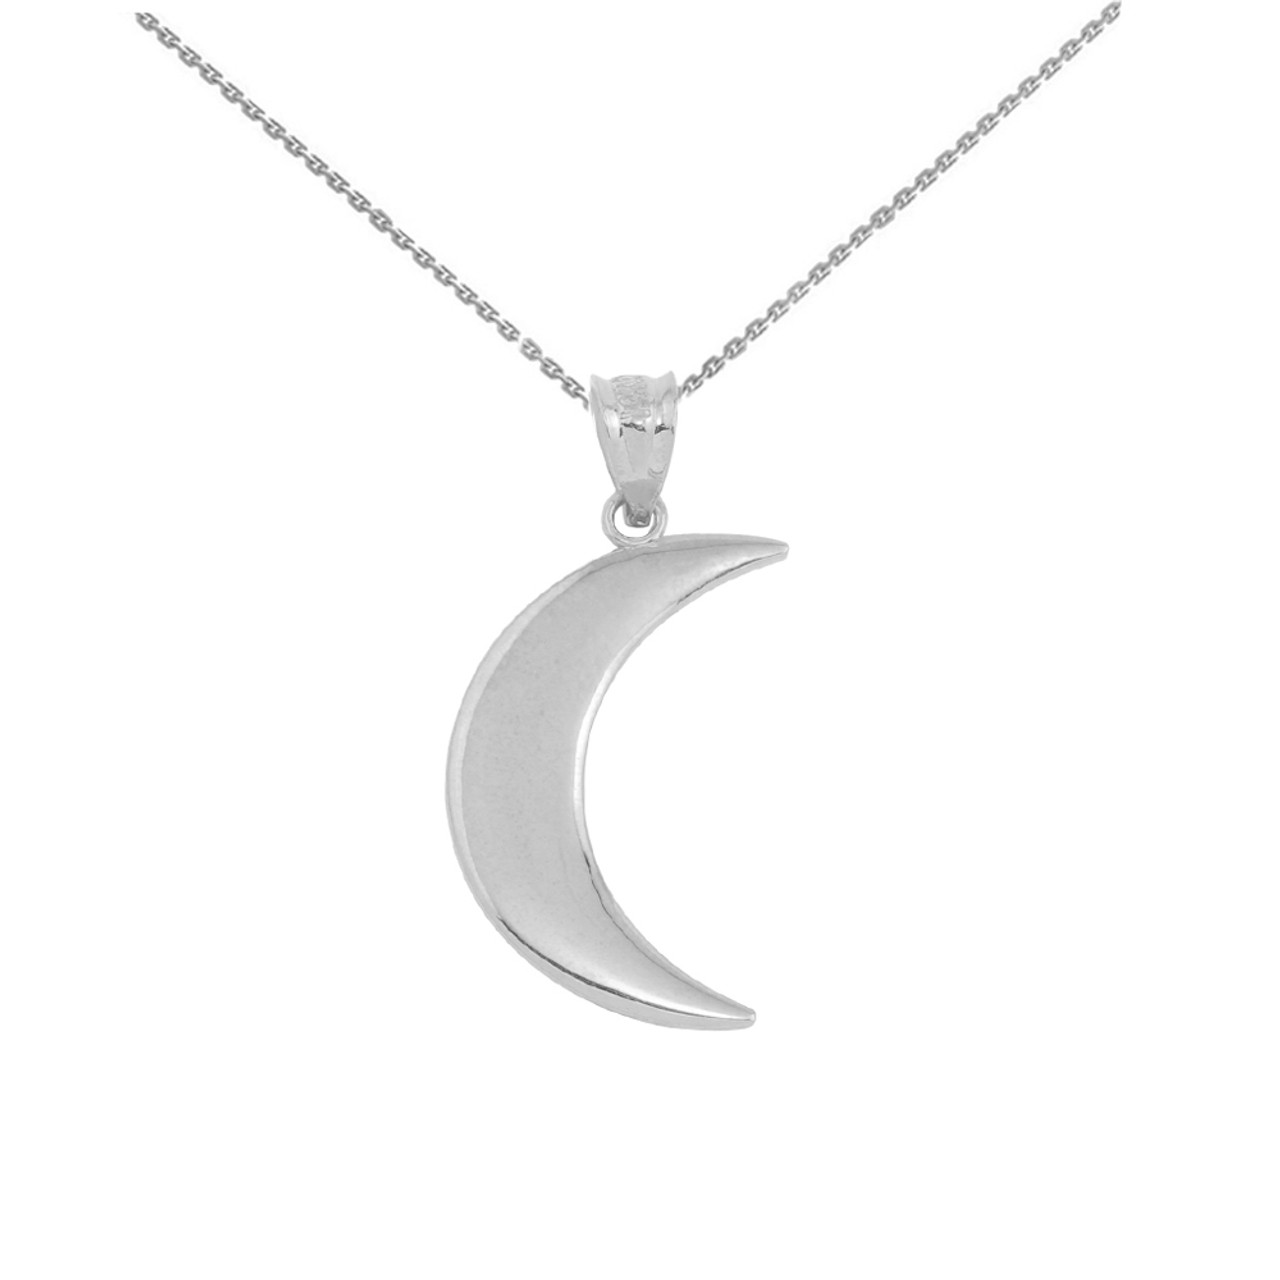 options jewelry necklace more diamond crescent moon products pendant madyha farooqui gold